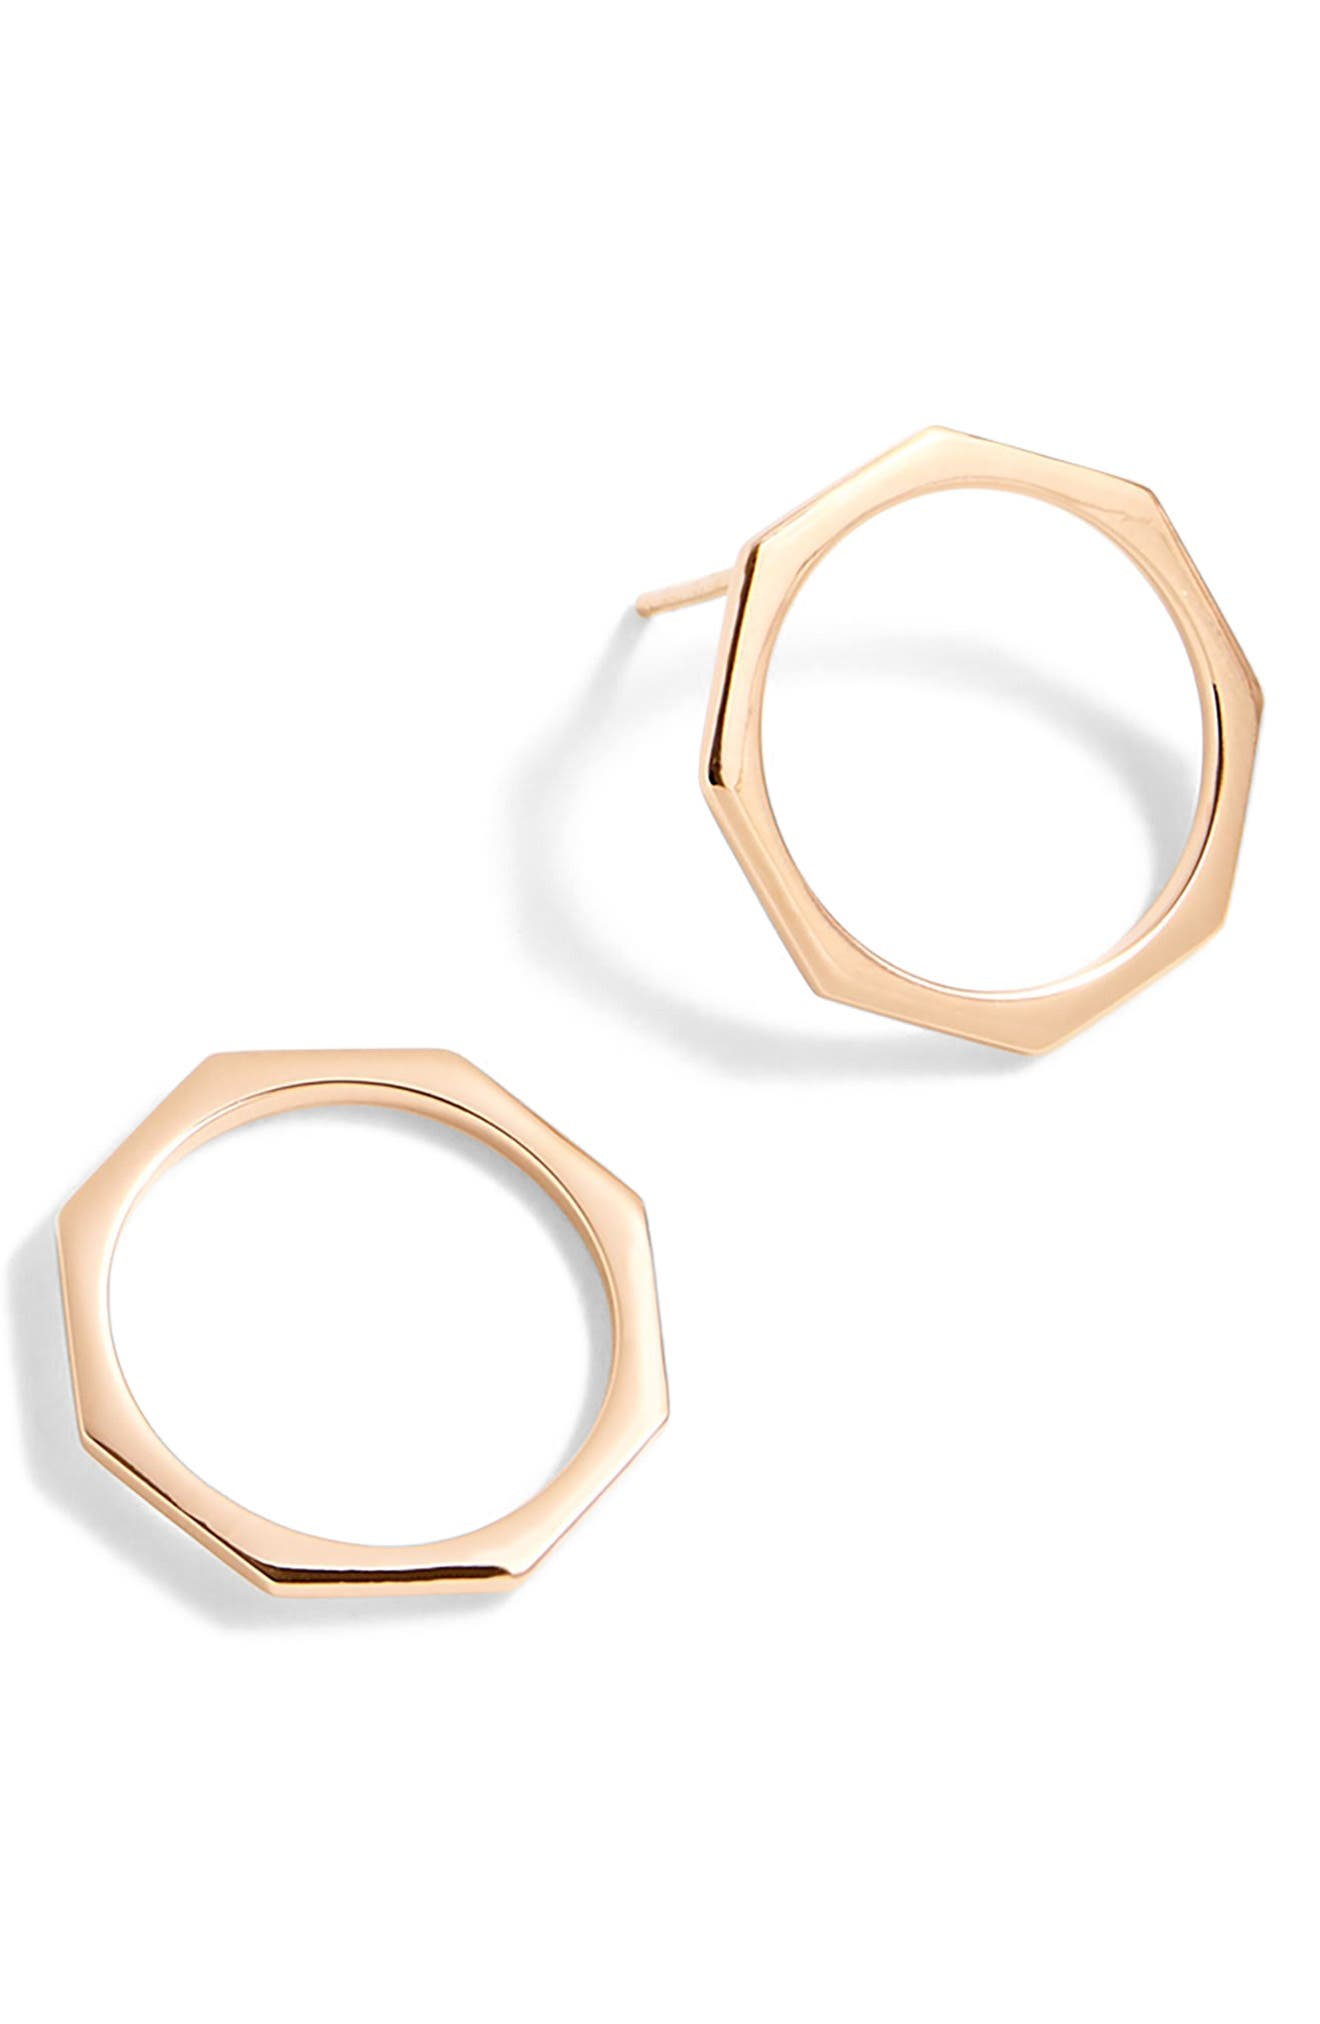 Delicate Octagon Earrings,                             Main thumbnail 1, color,                             650